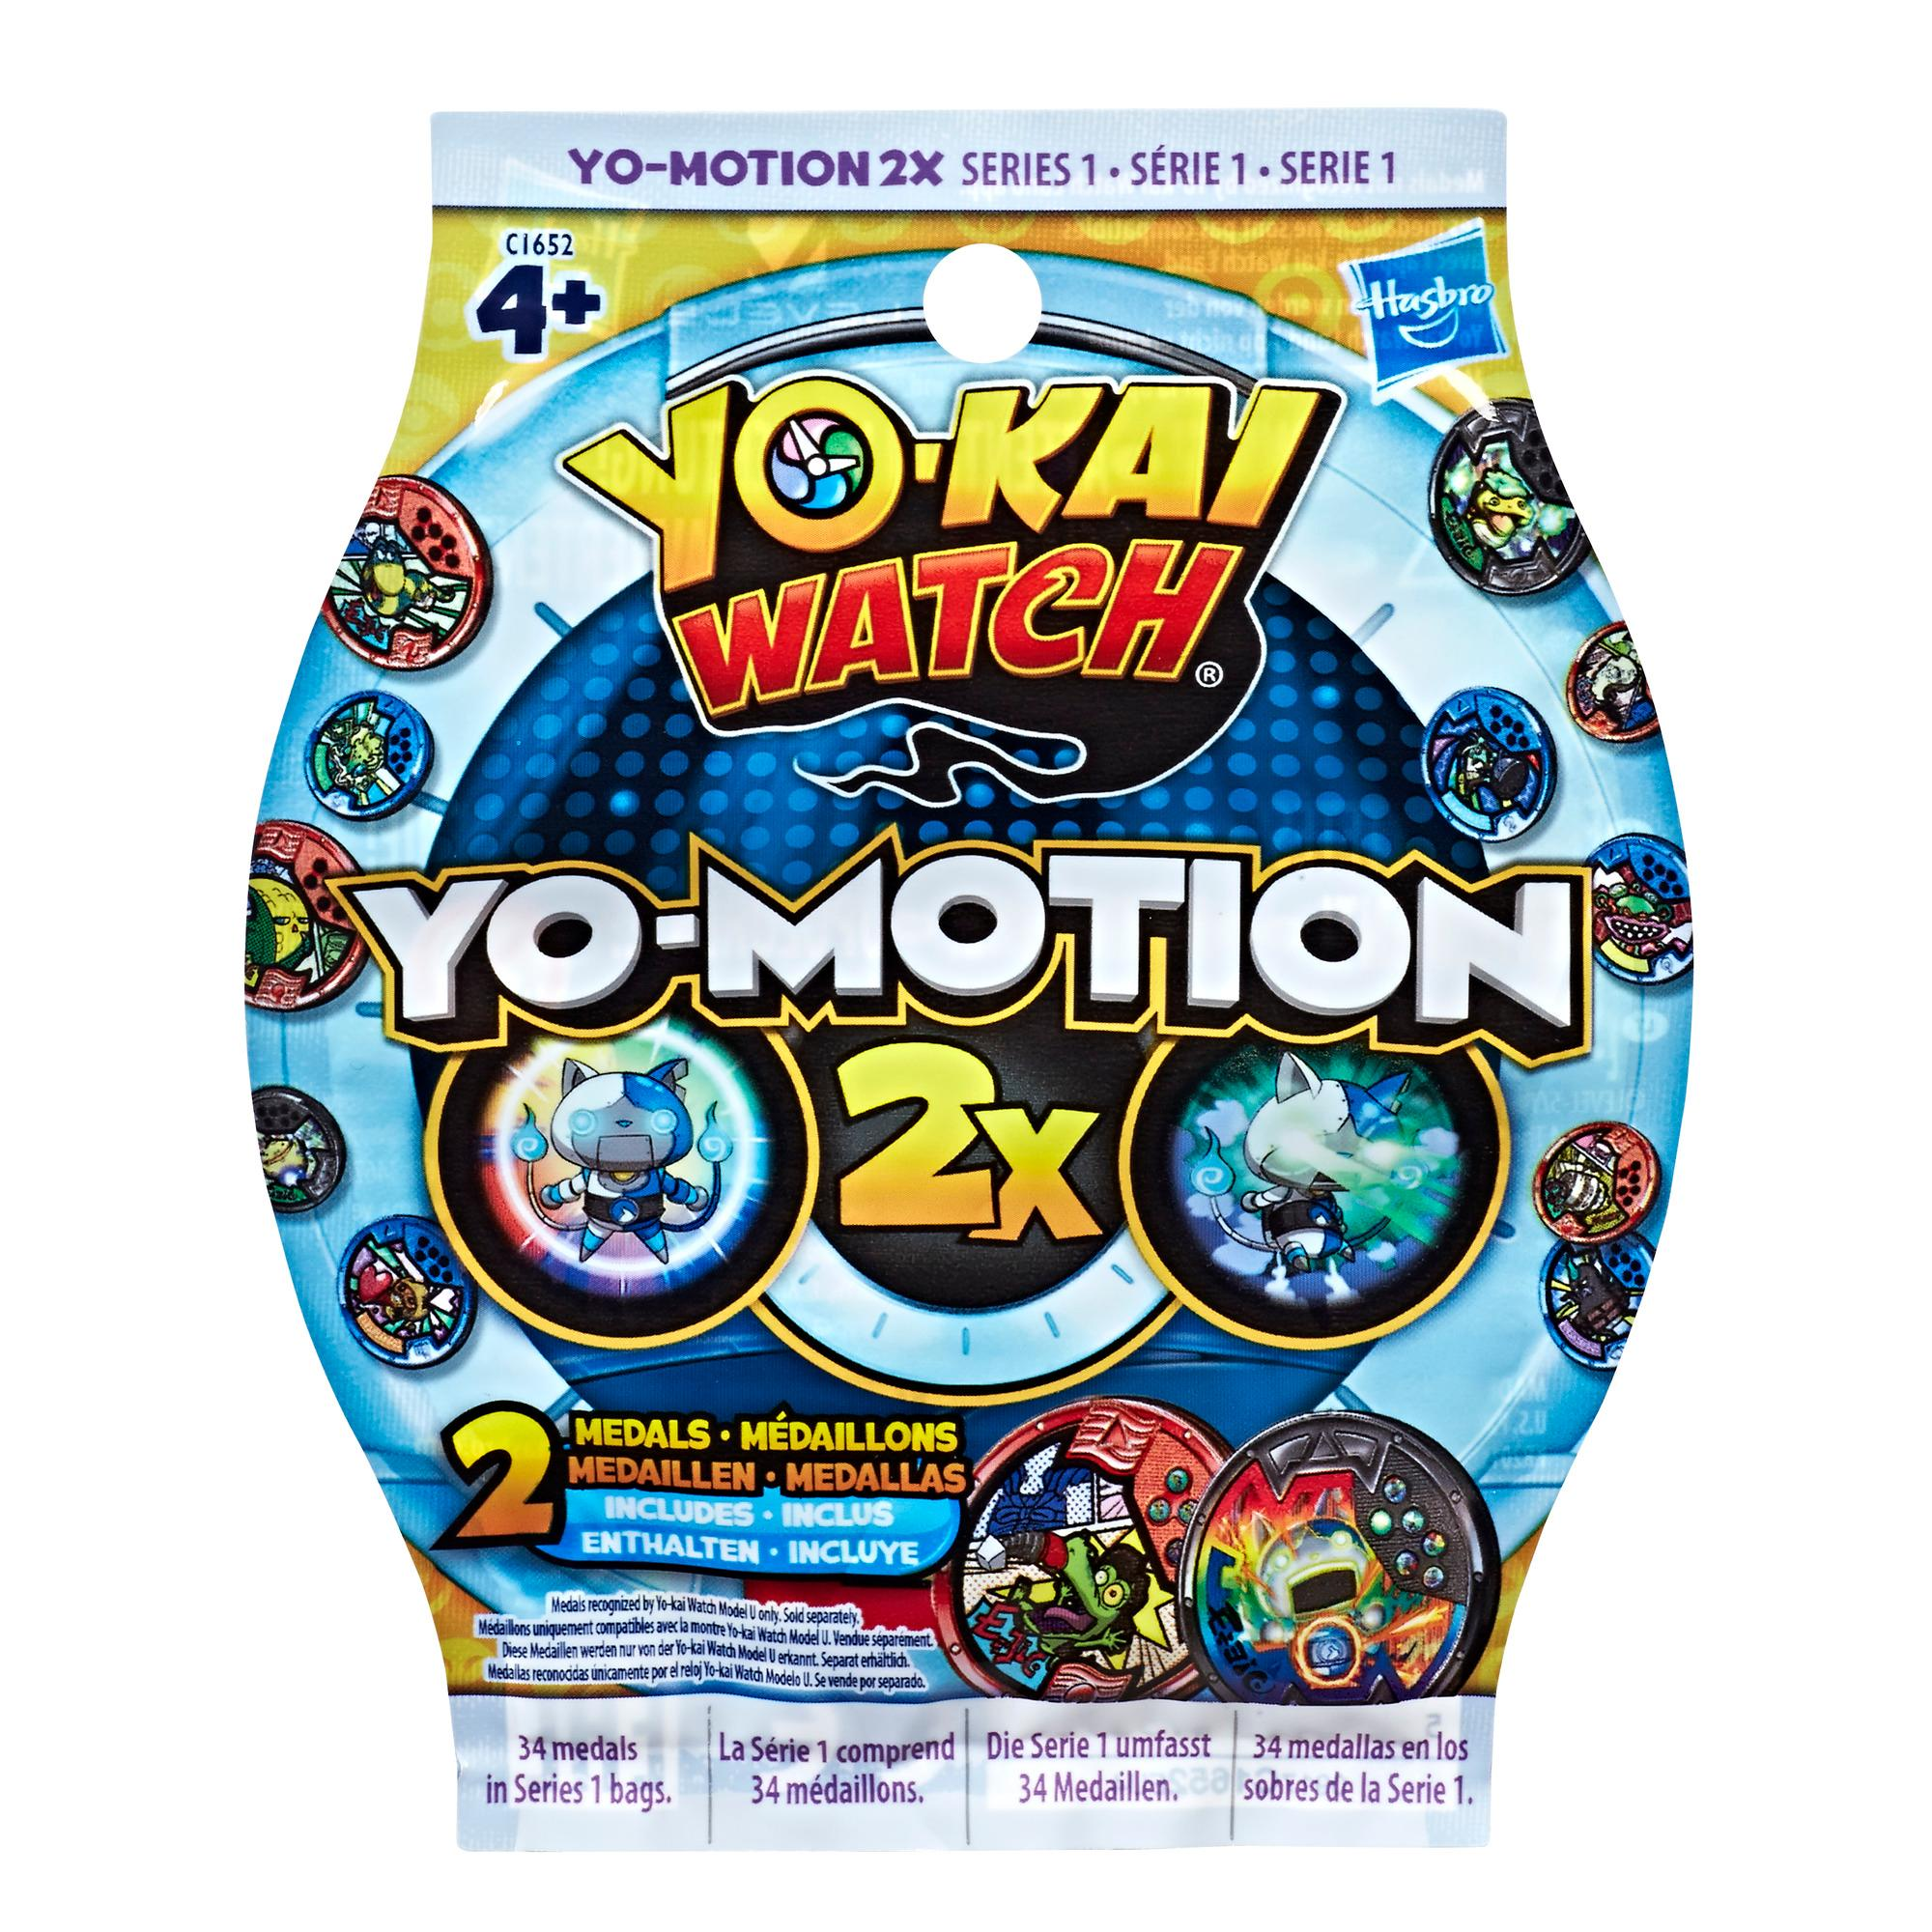 Yo-kai Watch - Medaglie Yo-Motion 2X Blind Bag (Serie 1)